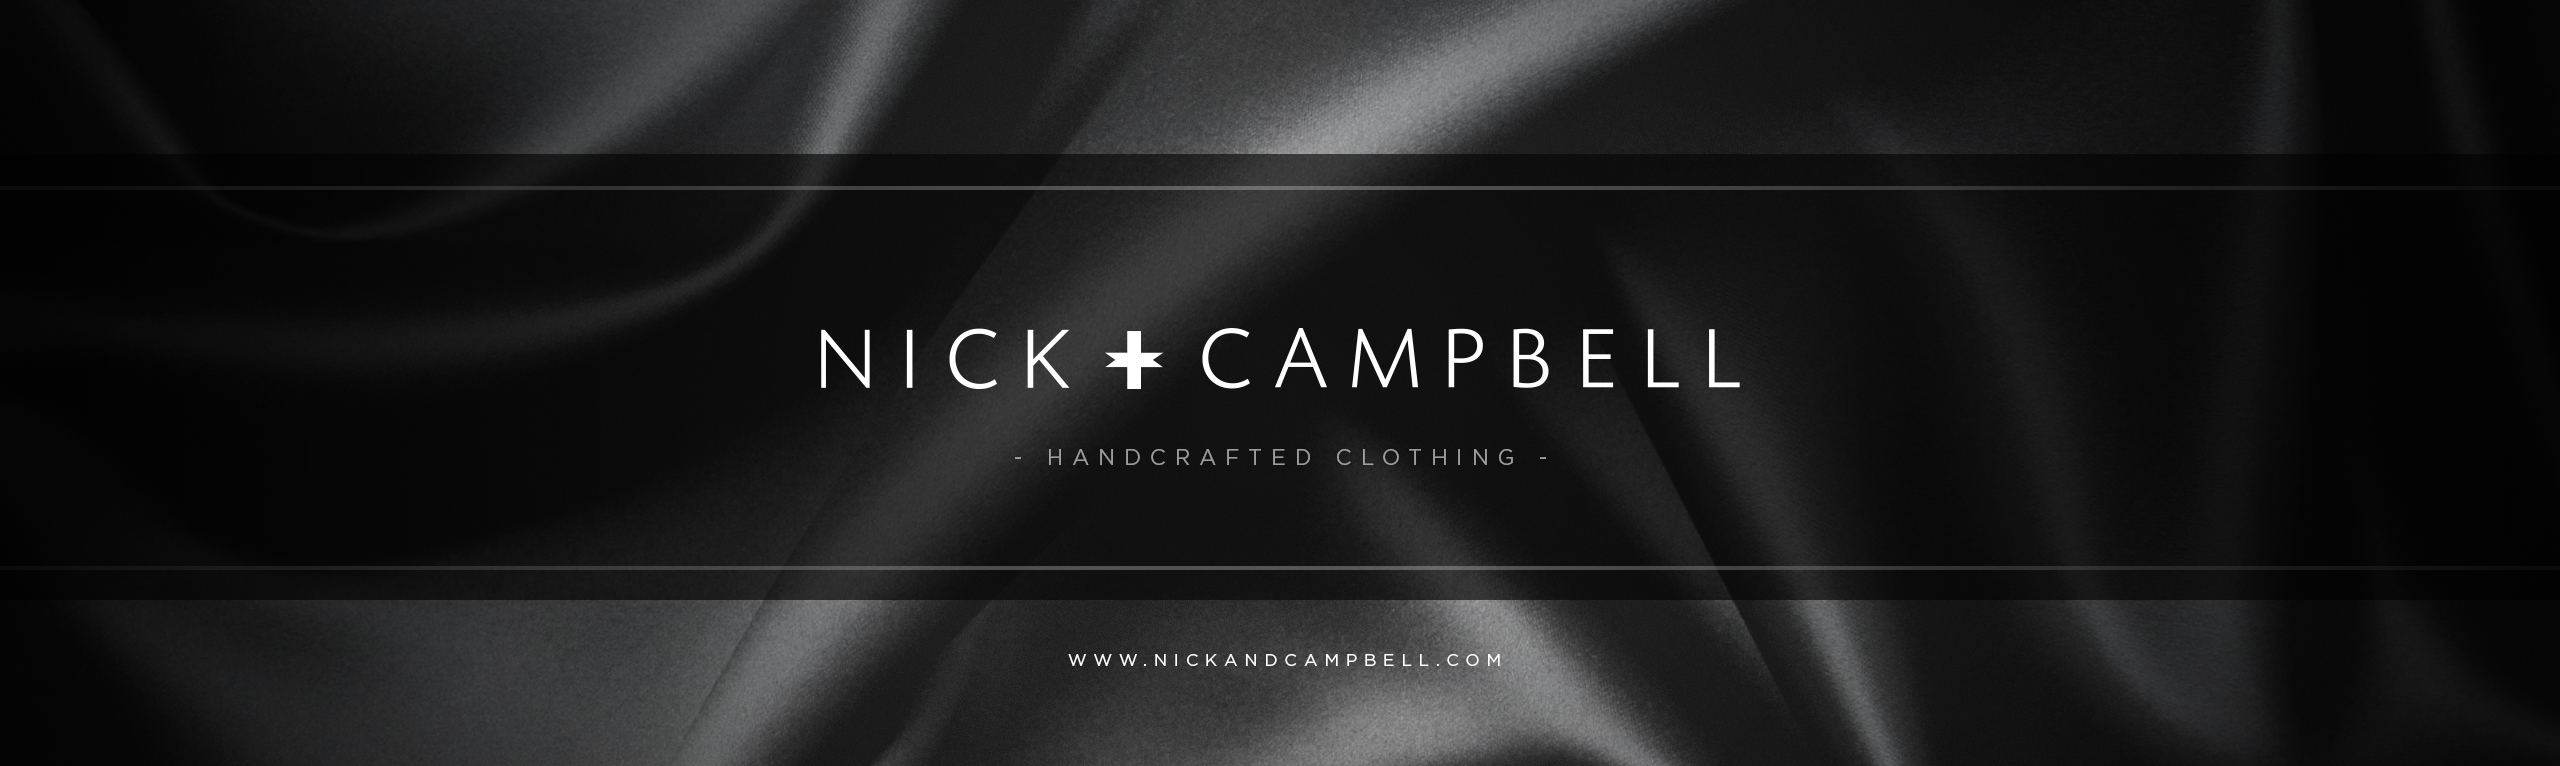 nickandcampbellheader